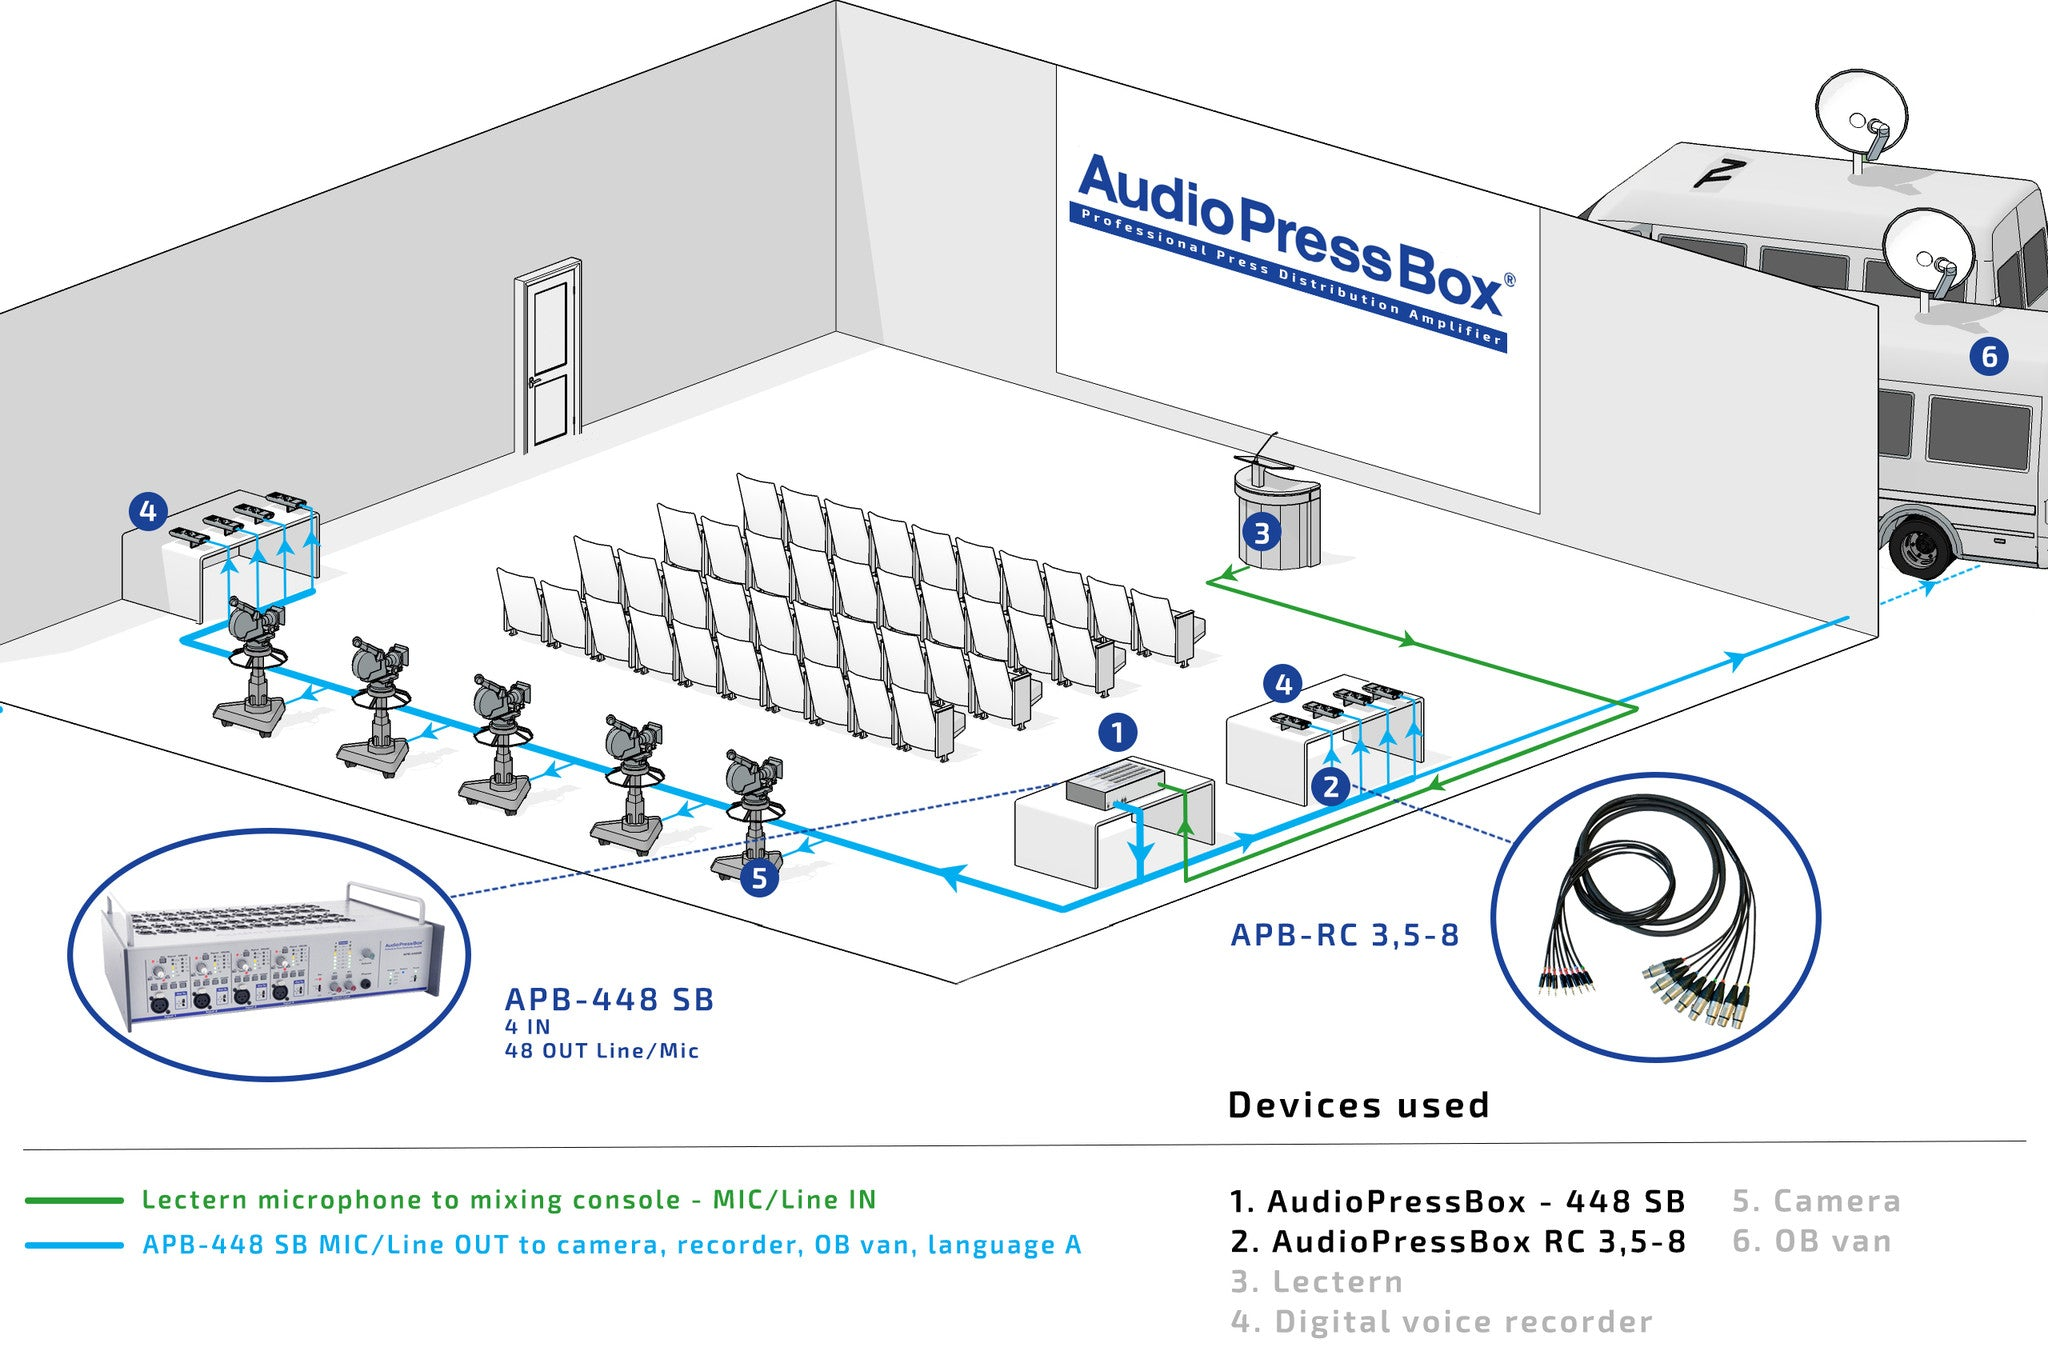 AudioPressBox, Mult Box, PressBox, Mult Box, Press Patch Box, Pressesplitter, APB-448 SB